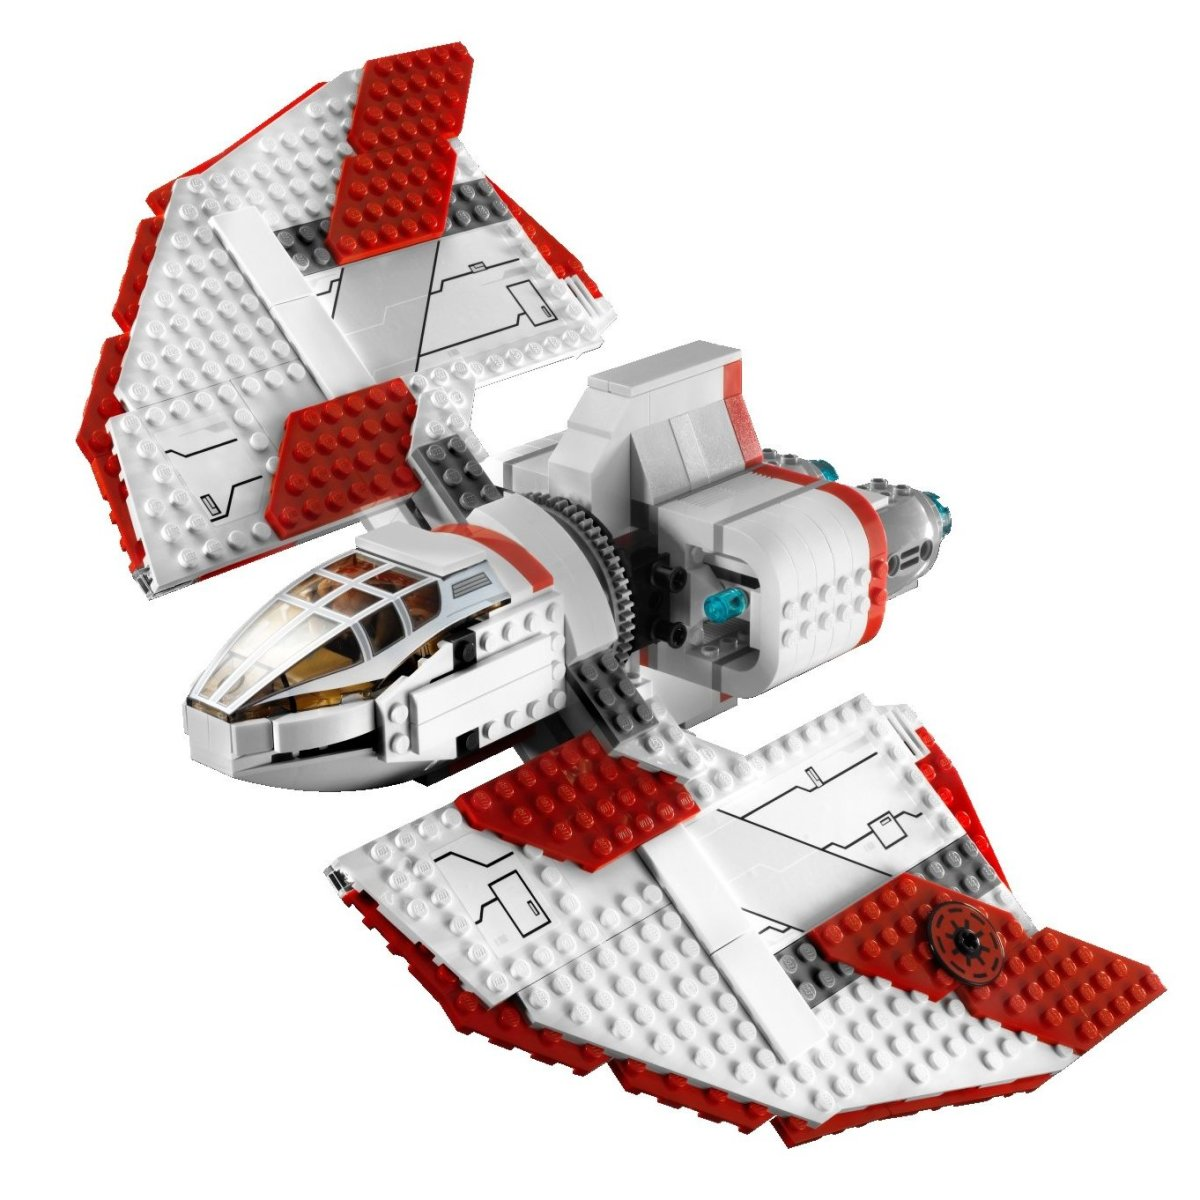 LEGO Star Wars T-6 Jedi Shuttle 7931 Assembled